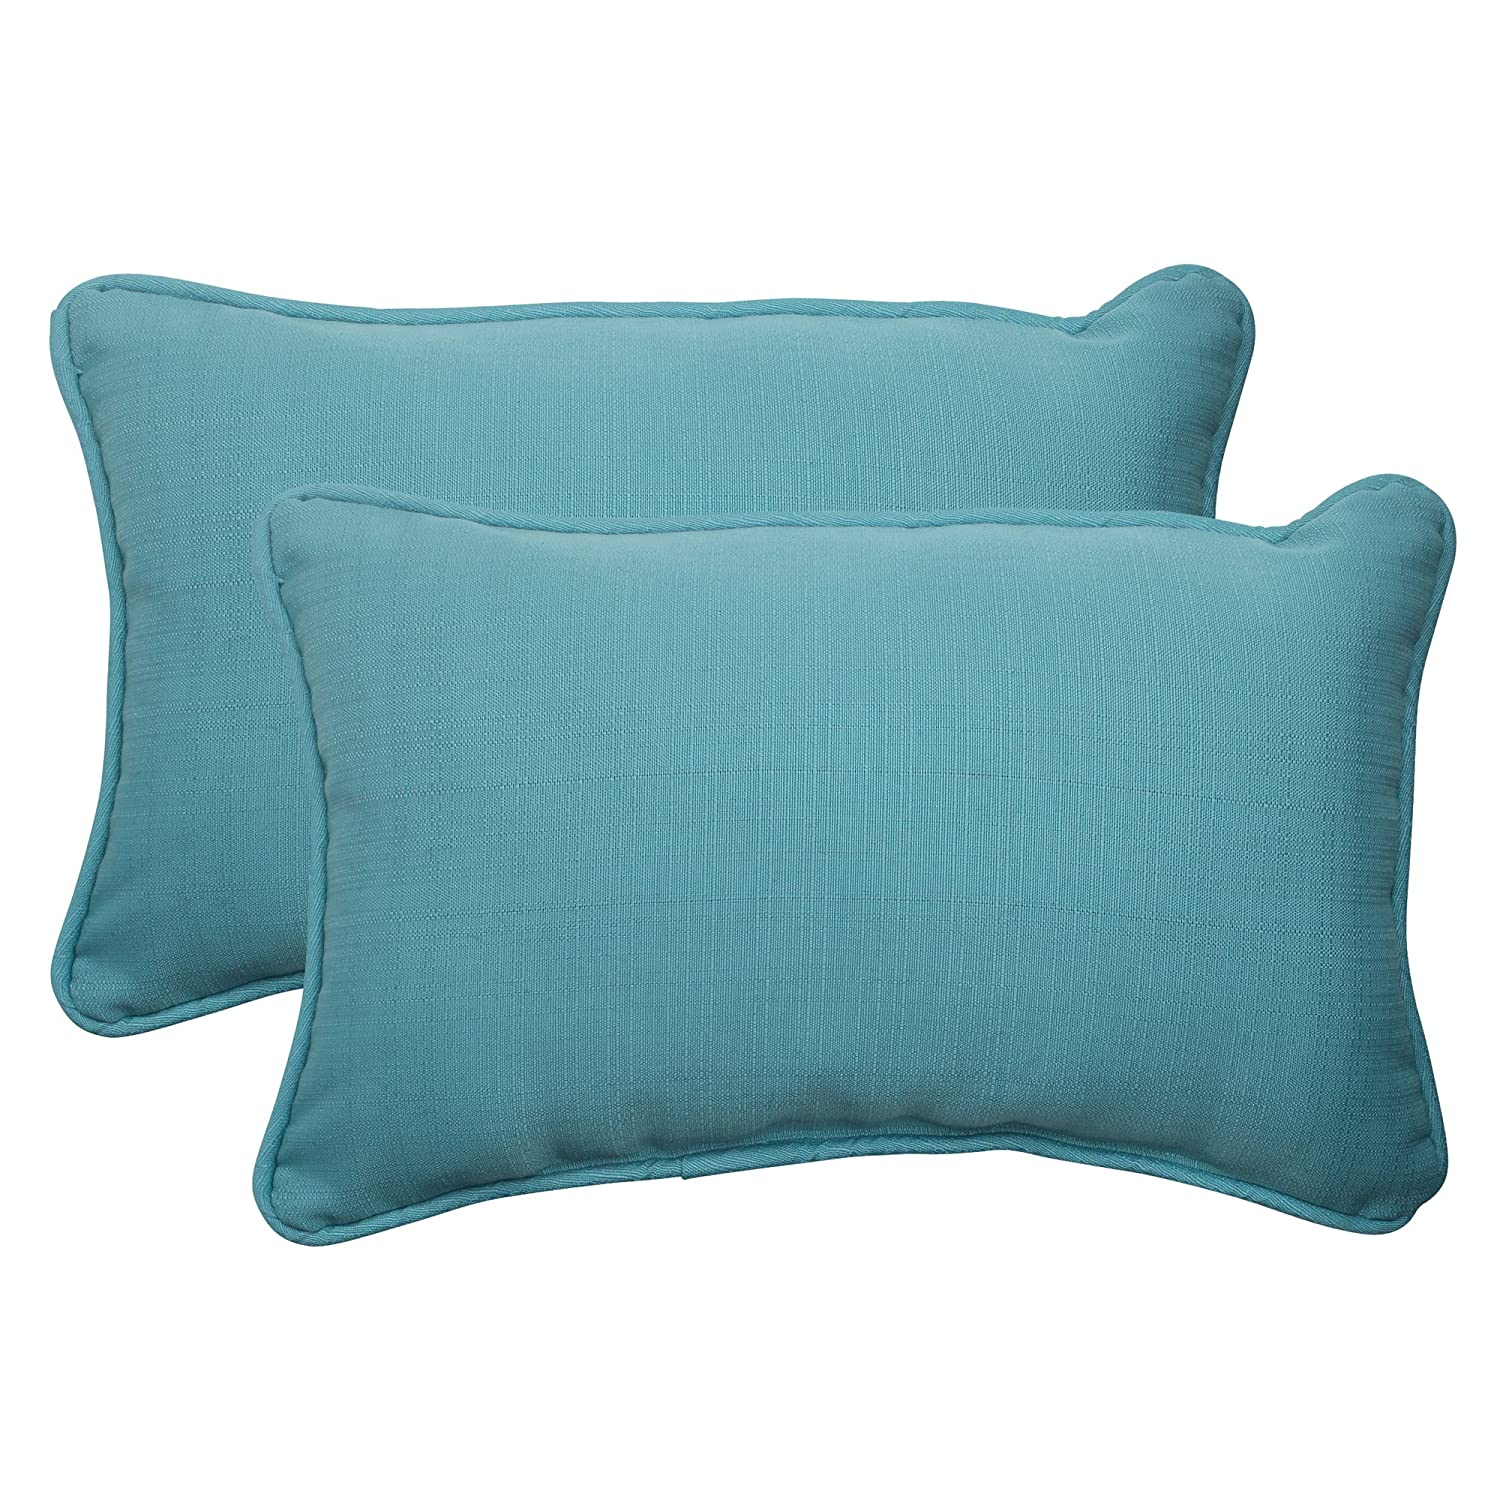 tips monogram for decorating couch ideas pillows throw decor christmas best turquoise by pillow decorative